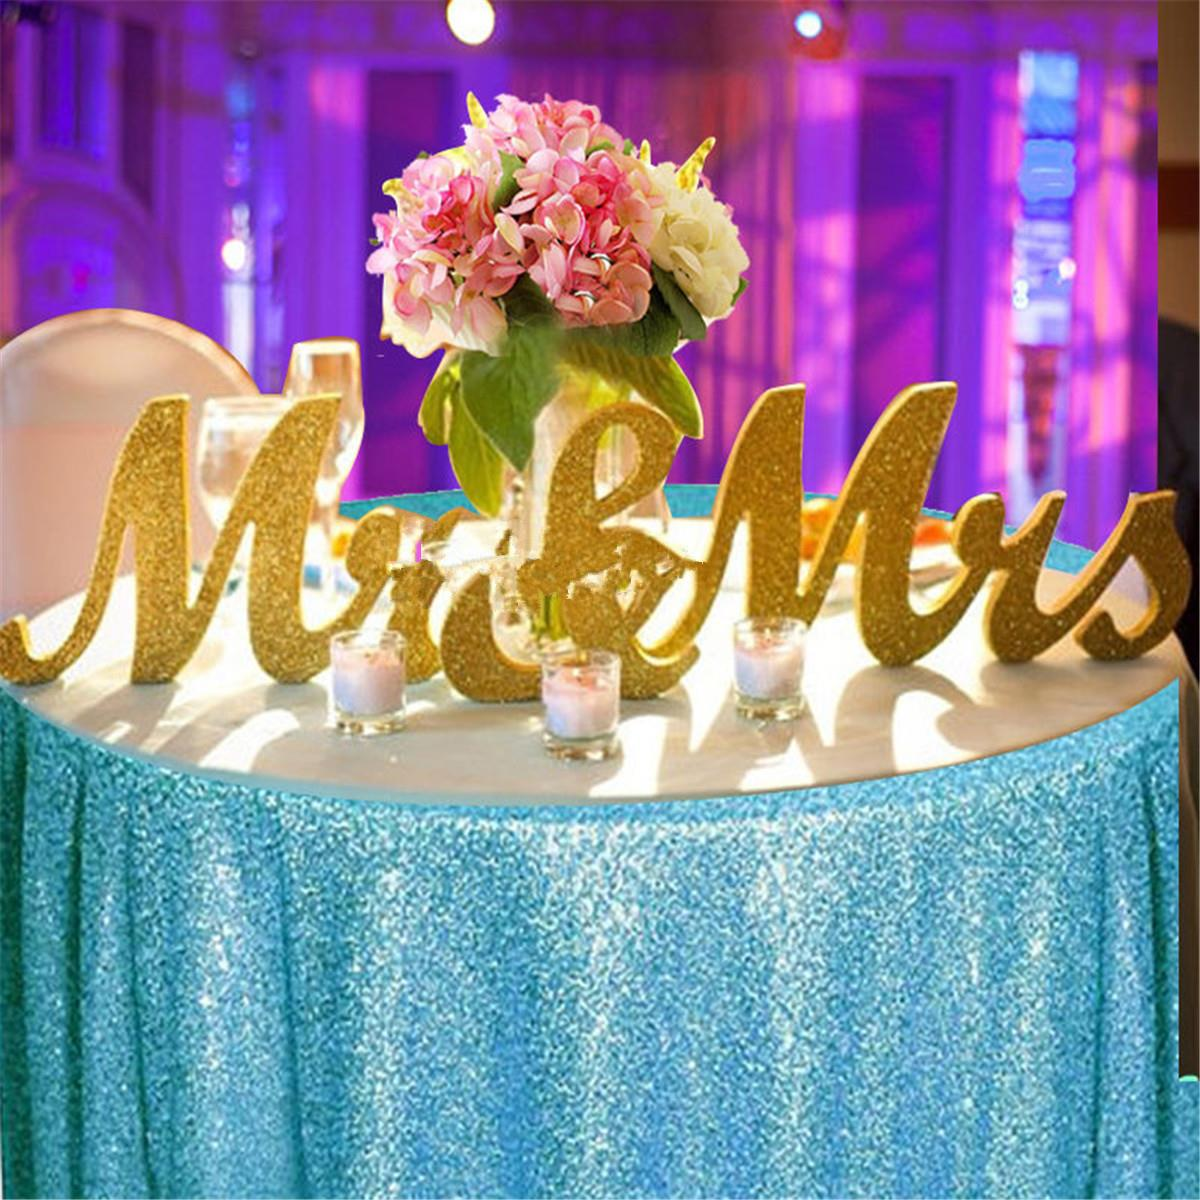 High Quality Gold Wooden Mr U0026 Mrs Letters Table Centrepiece Decor Wedding Reception Sign  Party Events Design Decorative